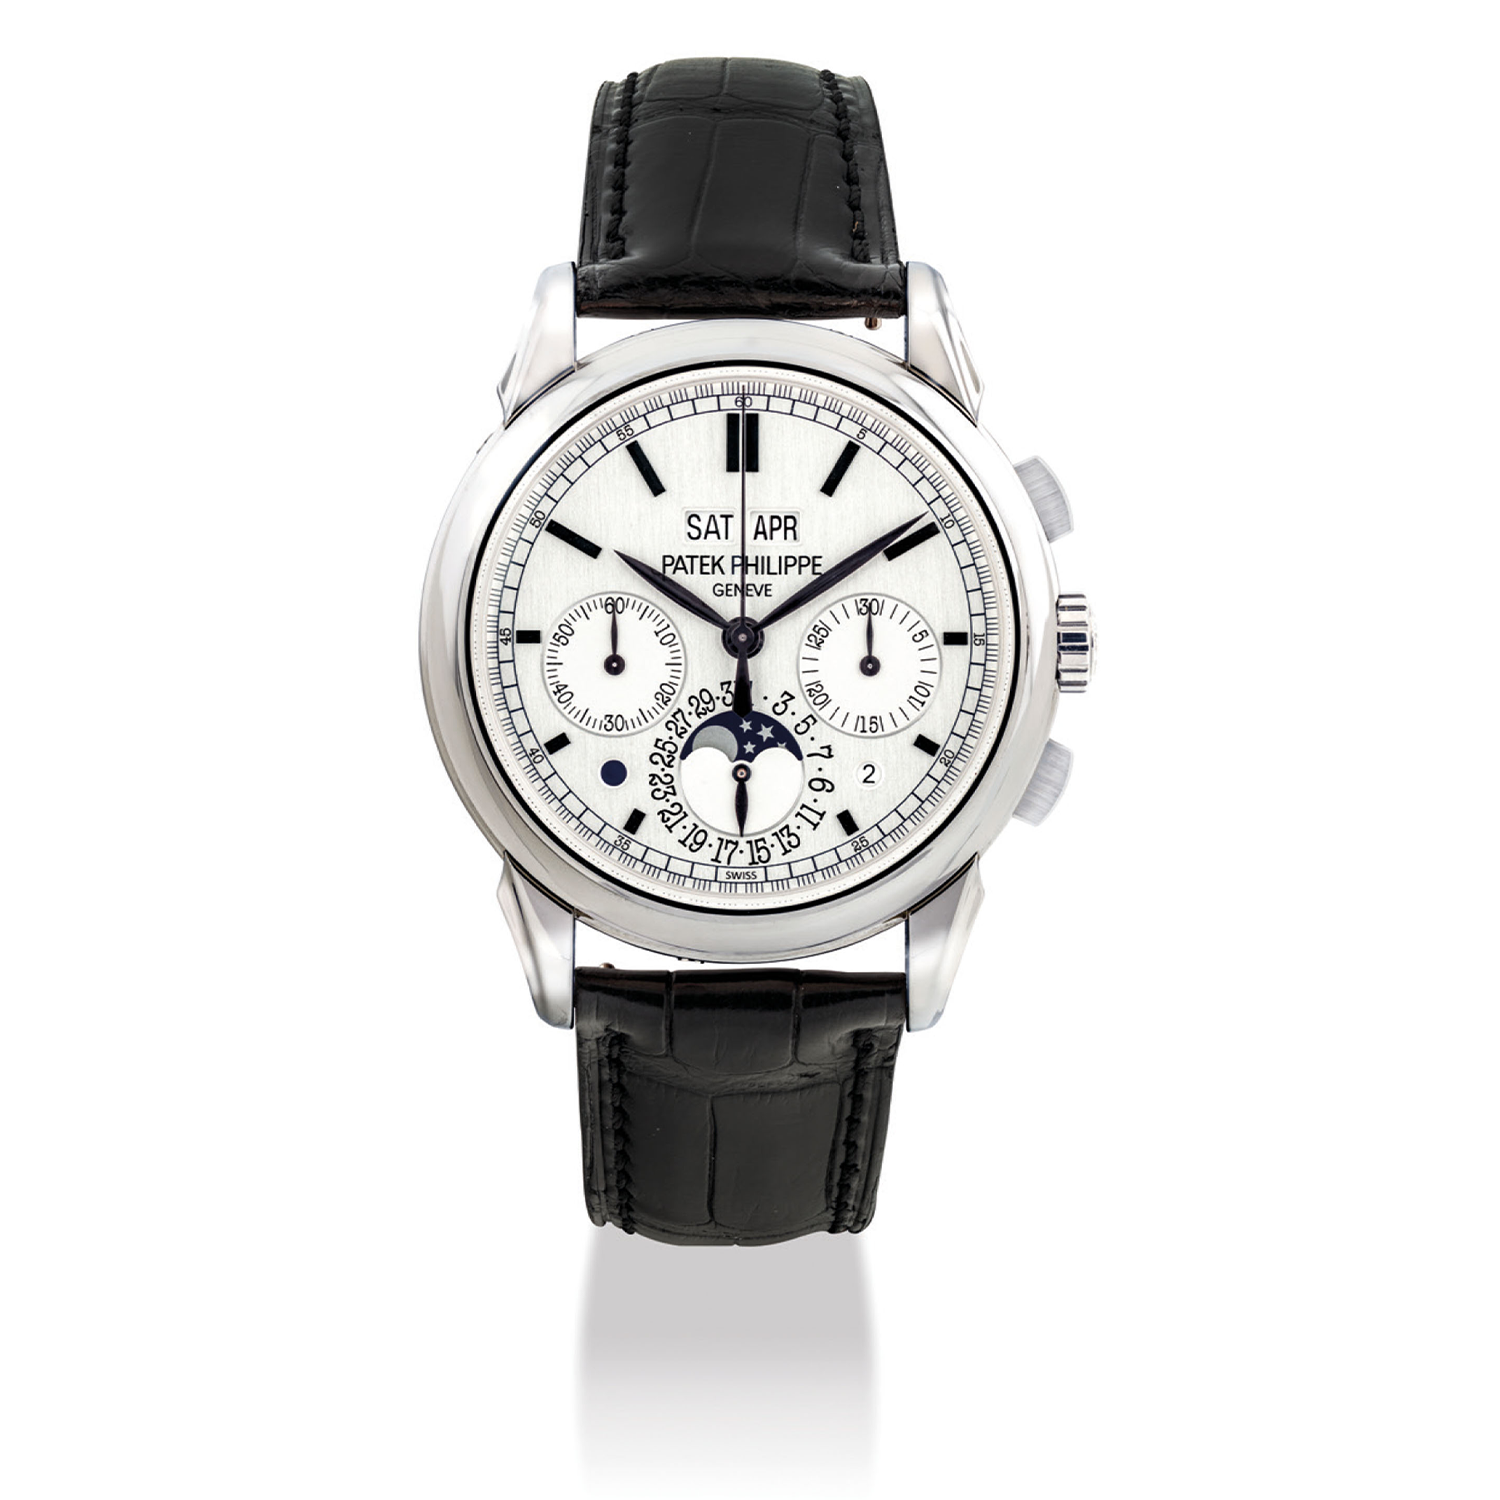 The 5270 Perpetual calendar's first generation was launched in white gold, in 2011 and then discontinued in 2017; this early version of the watch did not have a tachymeter scale